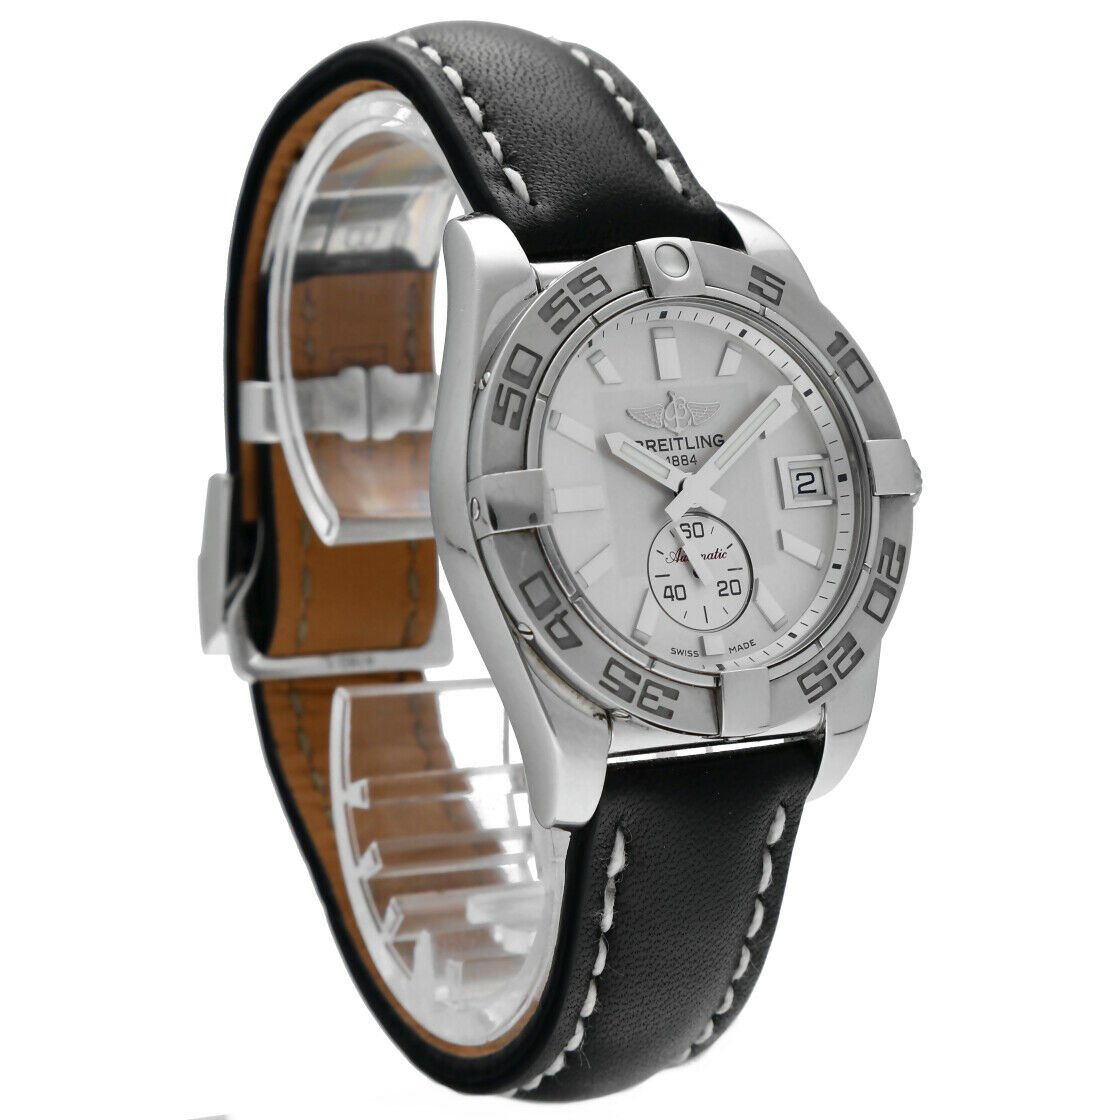 Breitling A37330 Galactic 36 Steel Silver Dial Leather Automatic Mens Watch 124367709895 4